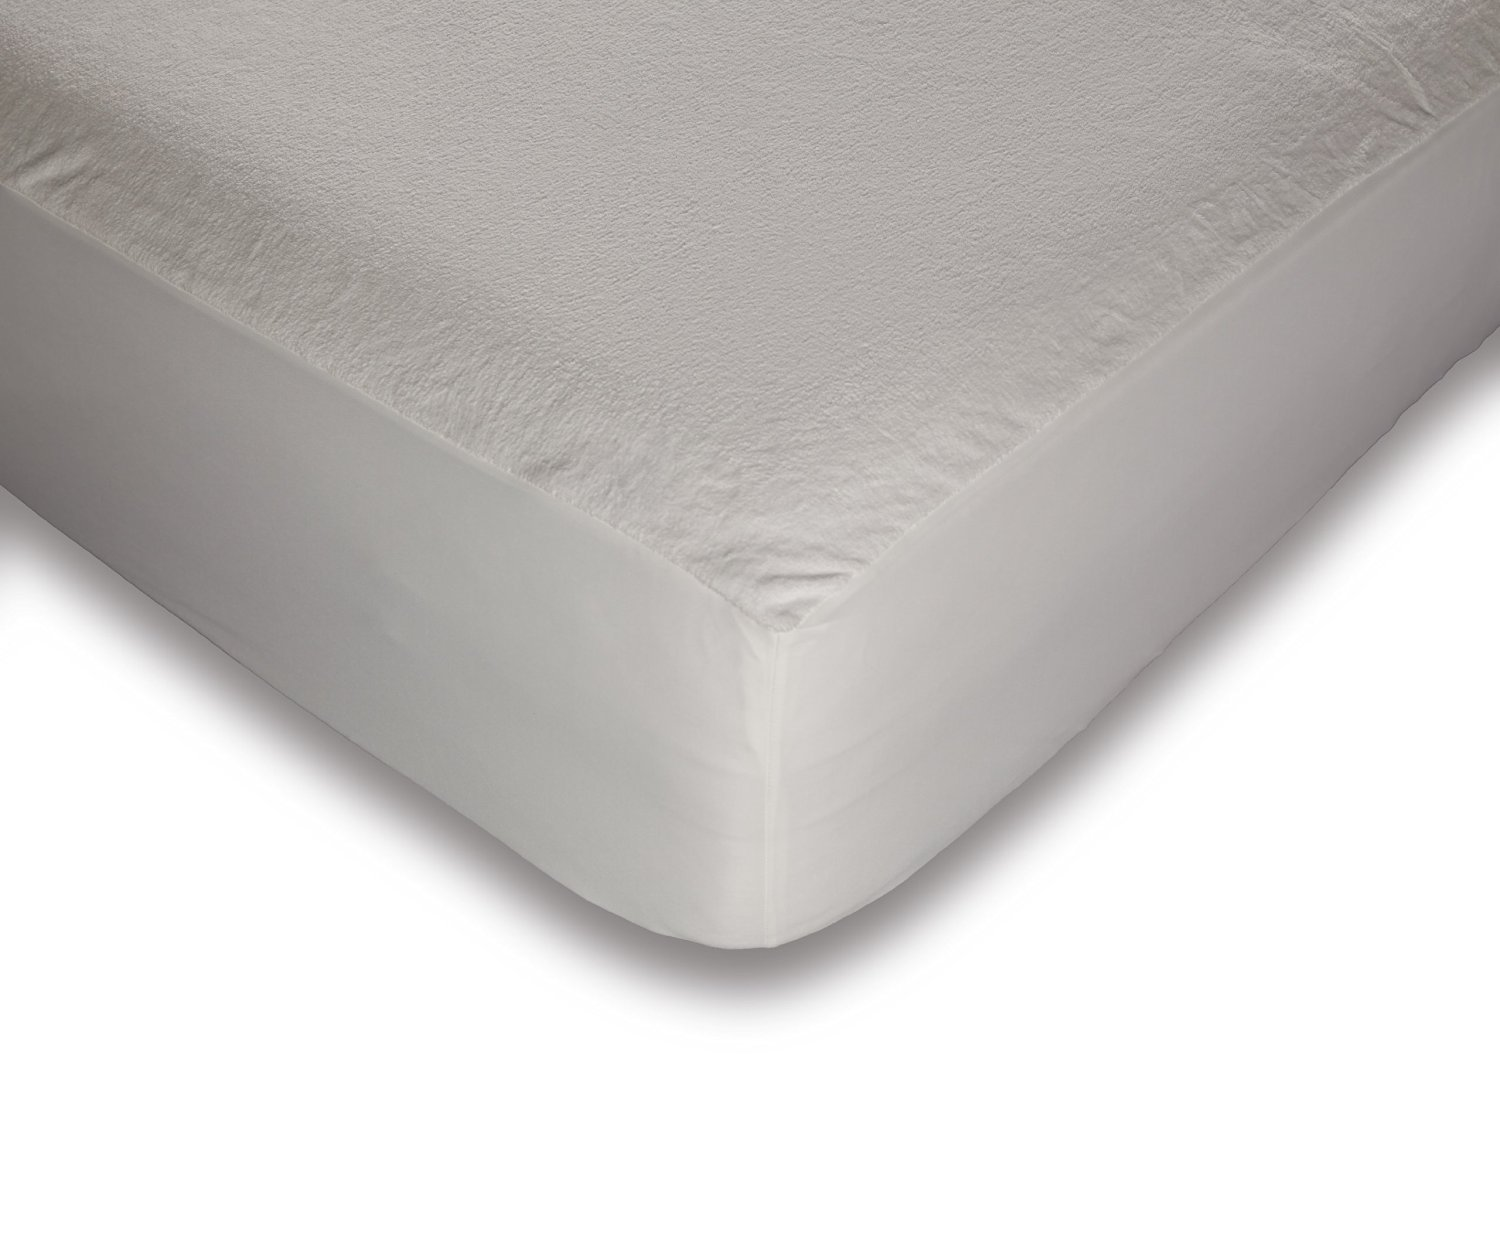 Cheap Ultra Soft Mattress Find Ultra Soft Mattress Deals On Line At